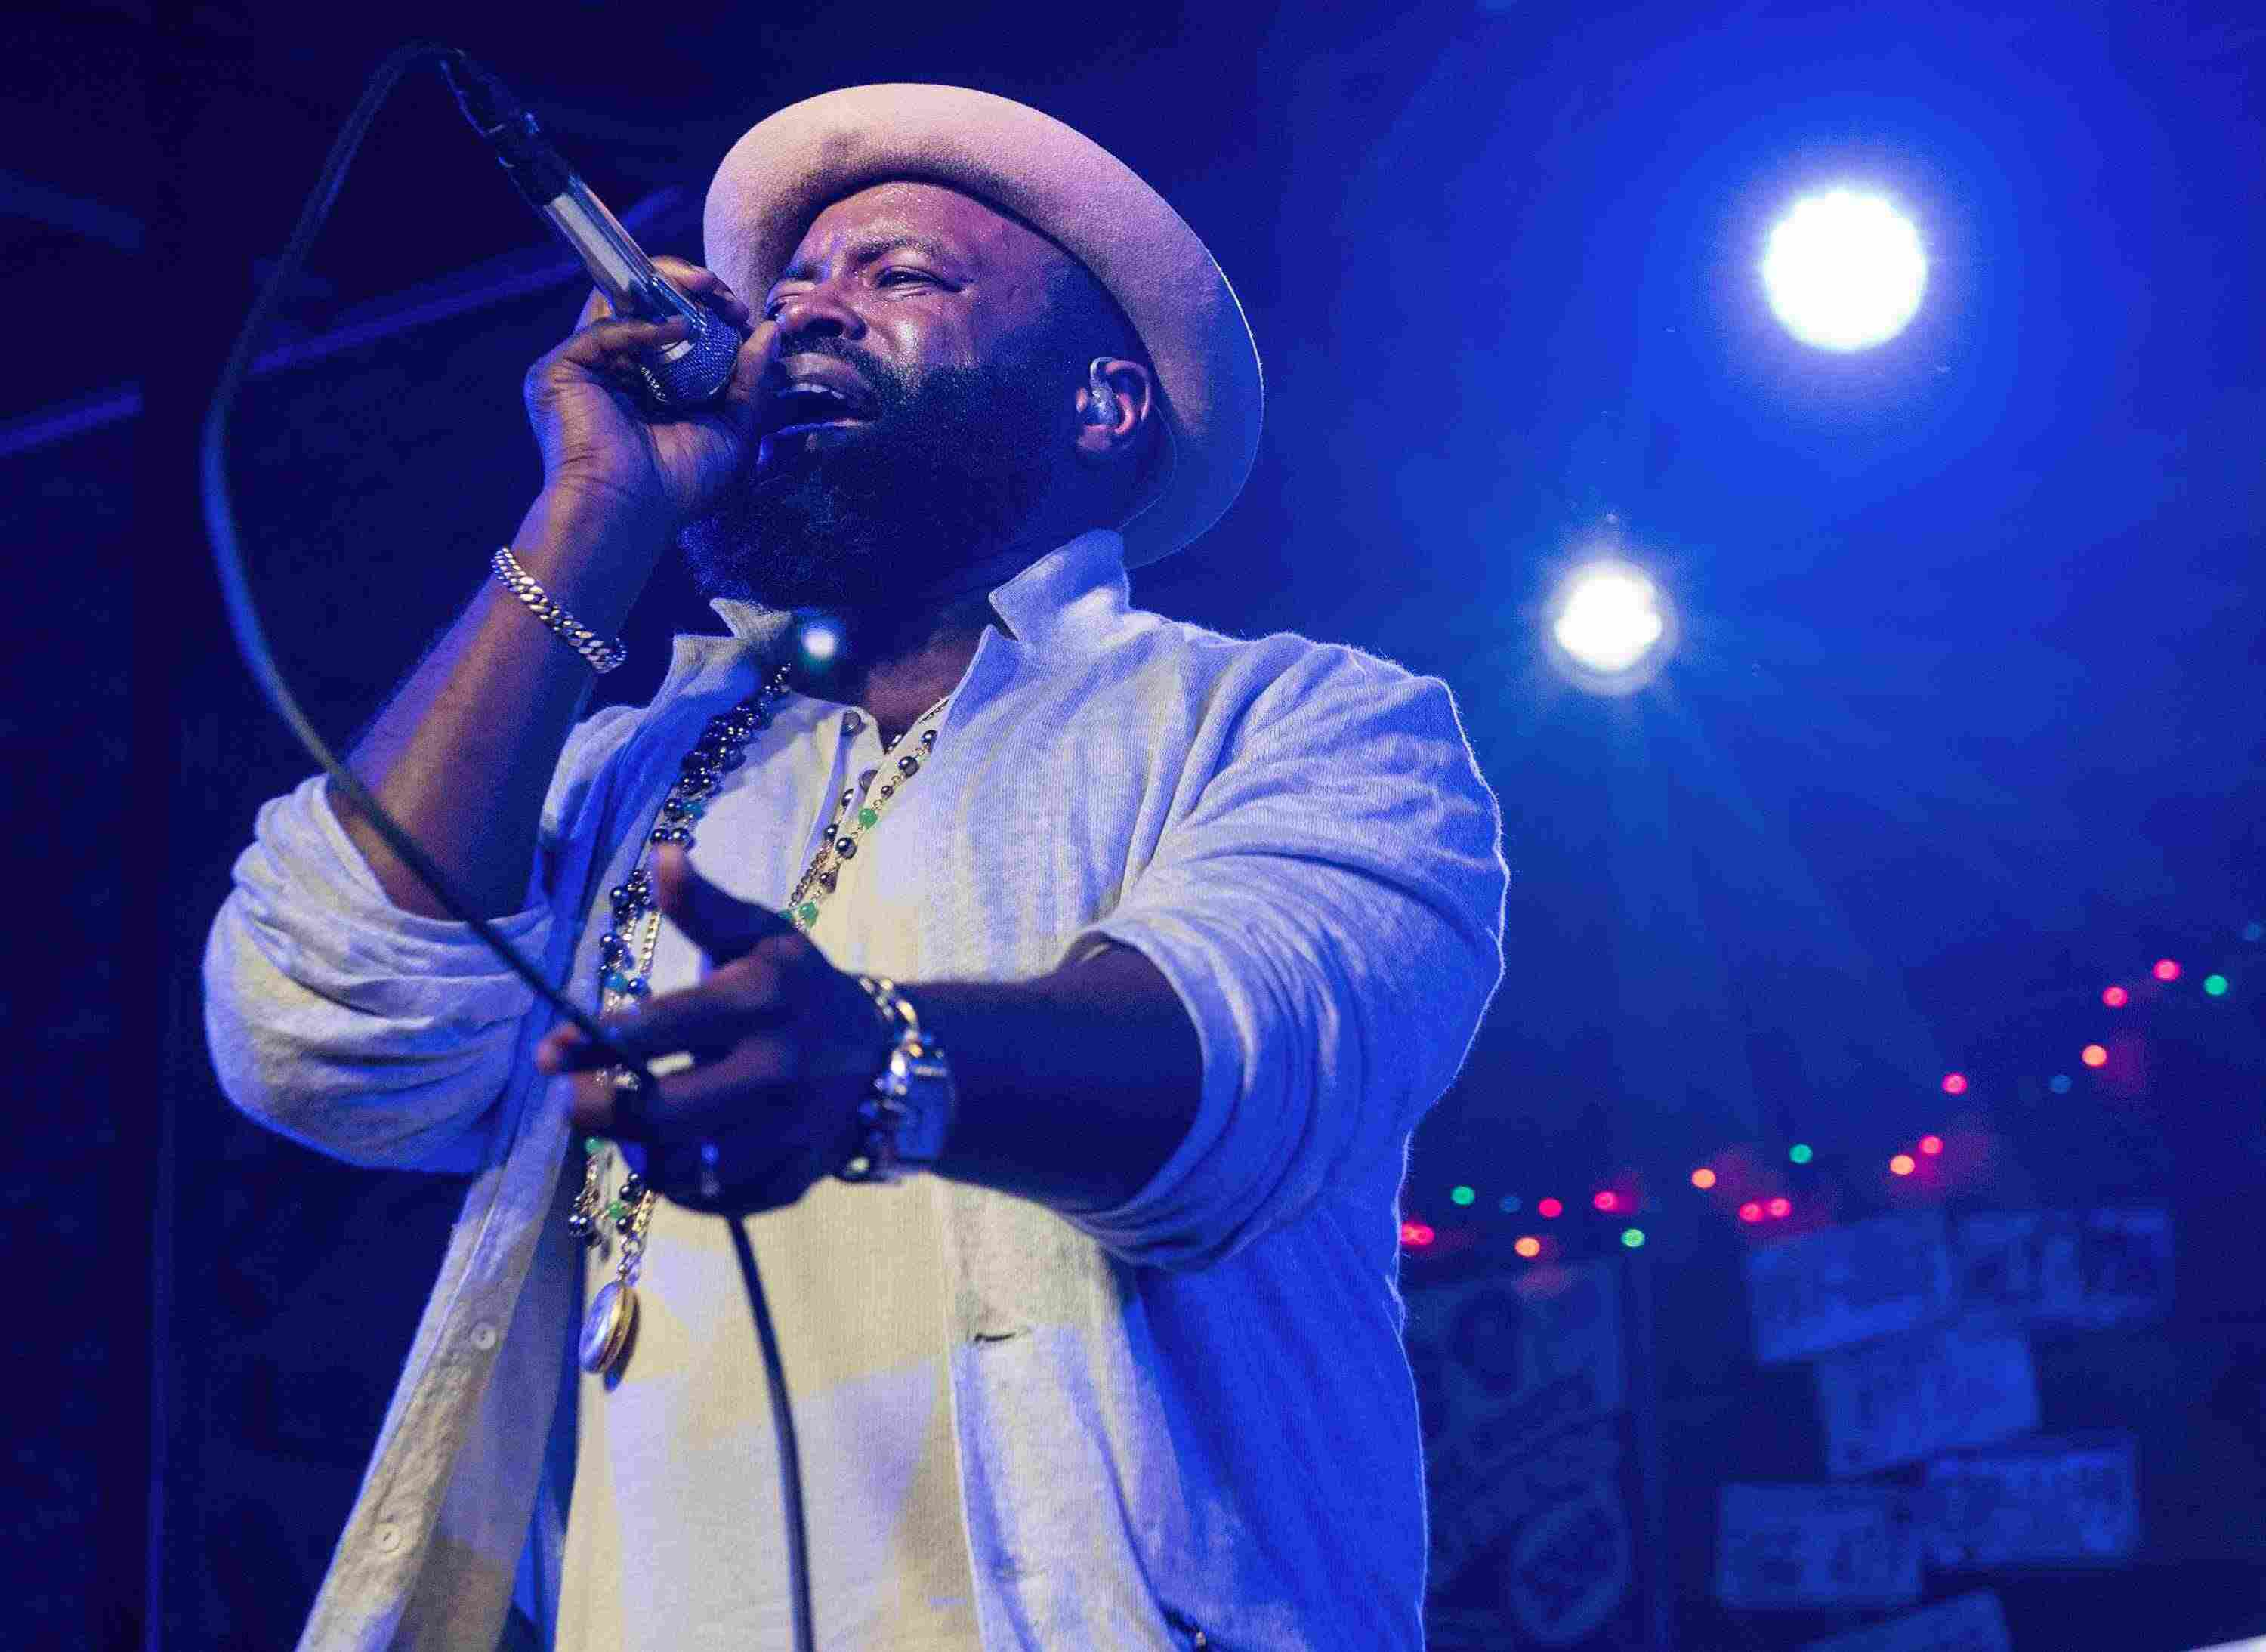 Bomb threat cancels The Roots' SXSW concert